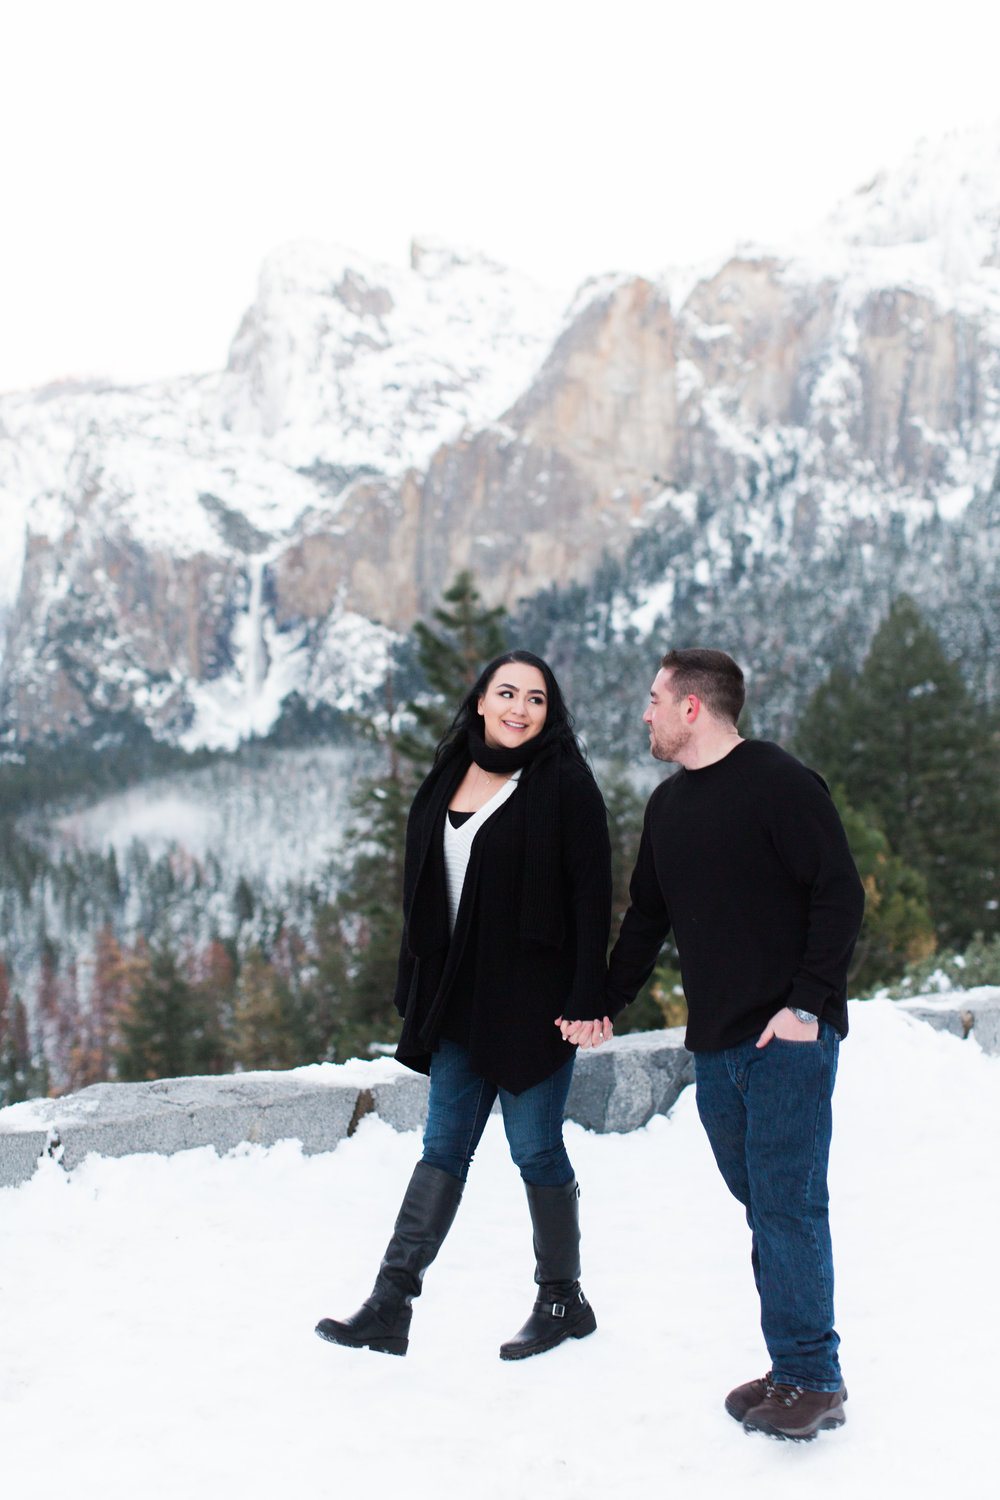 yosemite-california-engagement-session-7-2.jpg